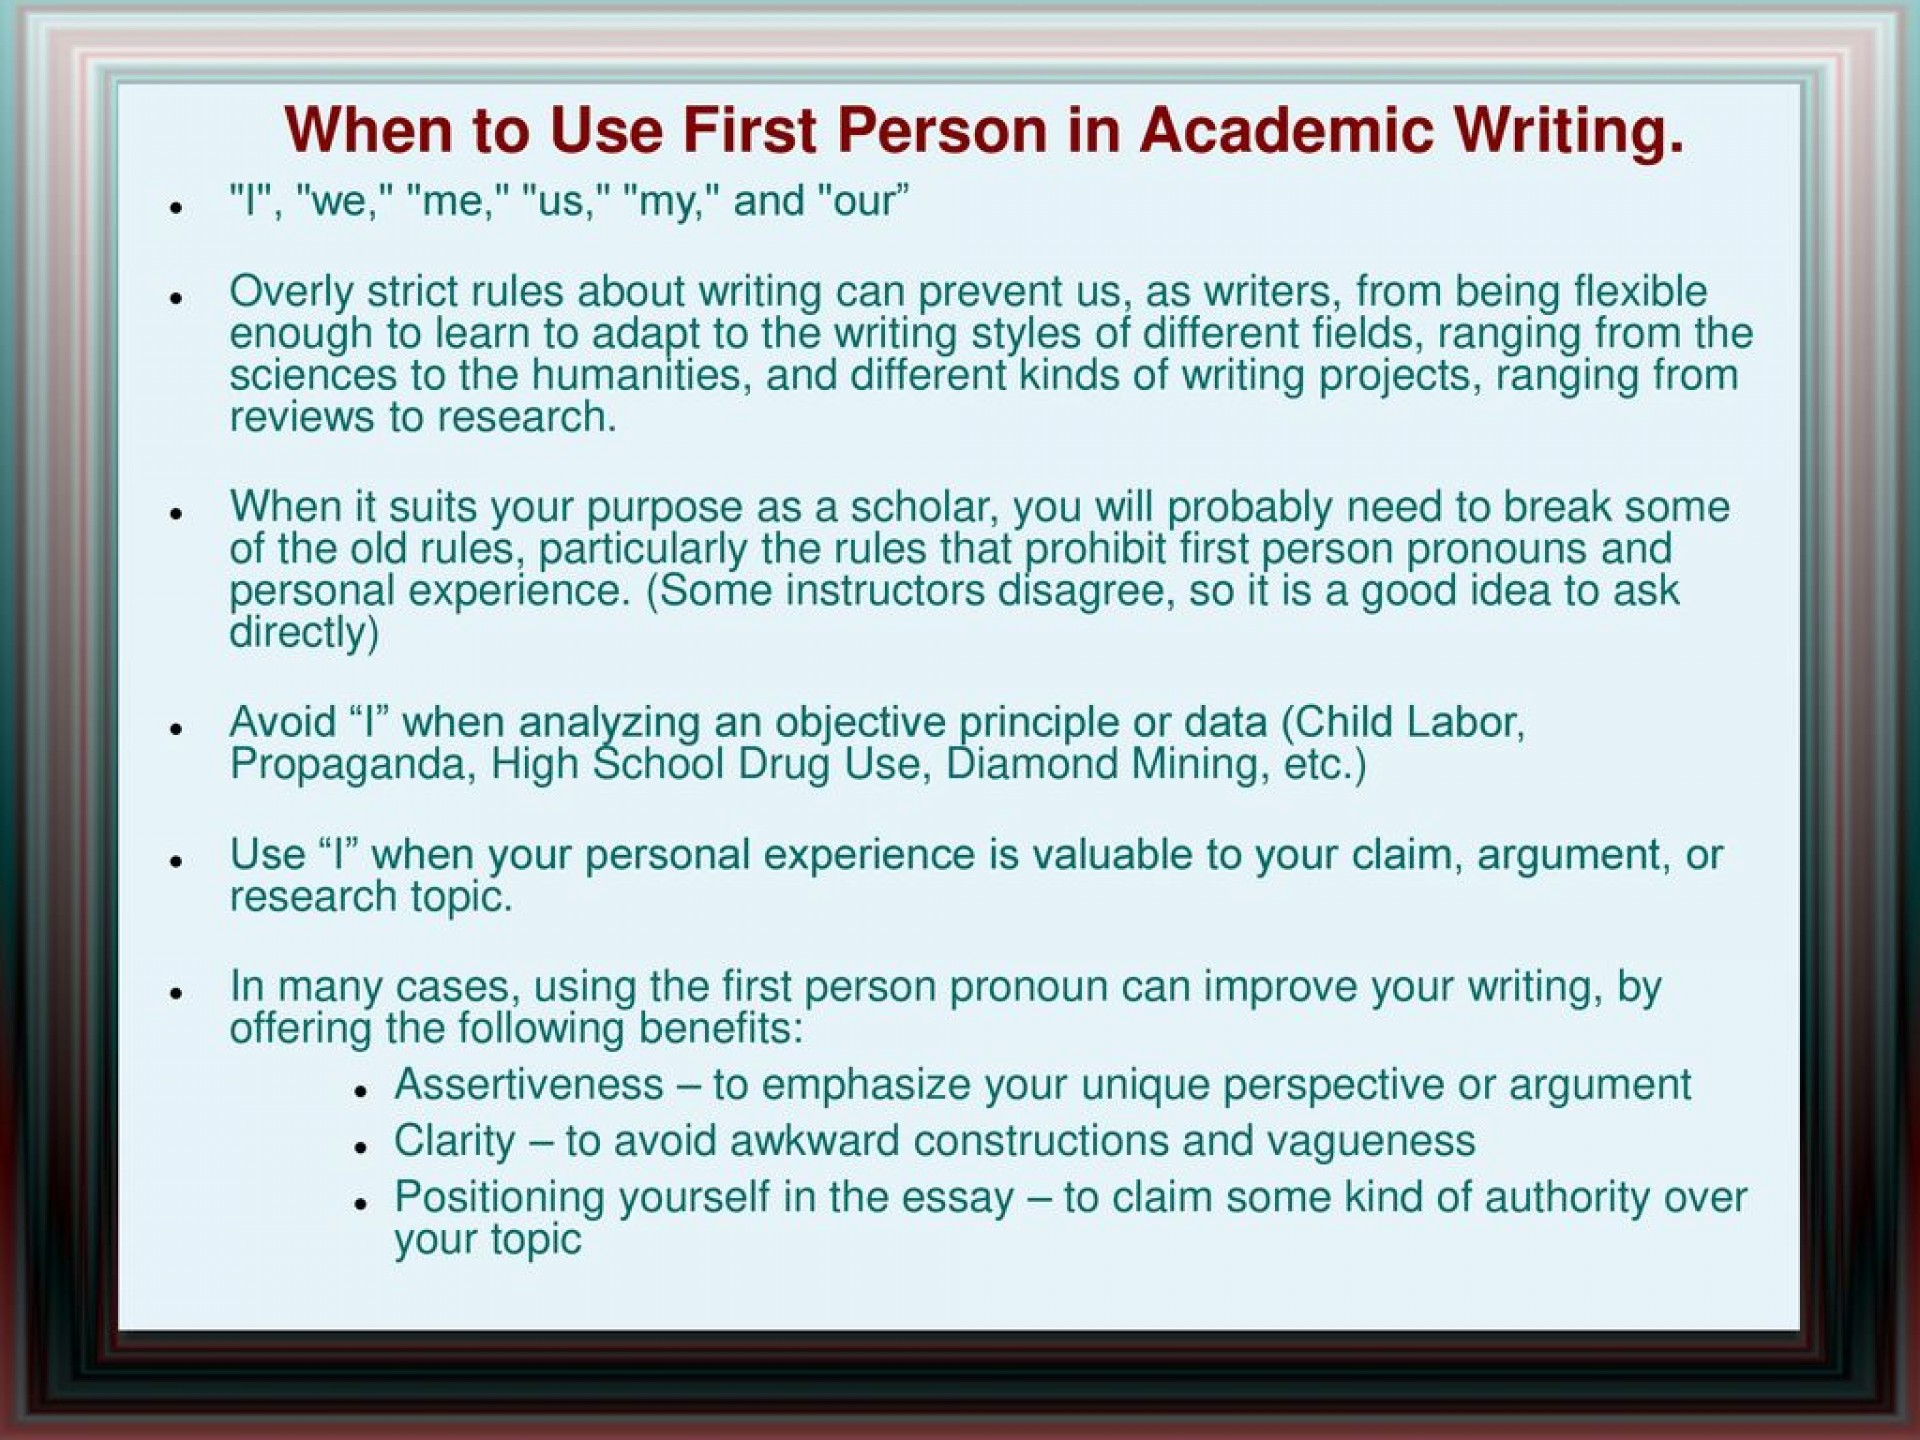 008 Whentousefirstpersoninacademicwriting Are Researchs Written In First Person Impressive Research Papers Proposals 1920